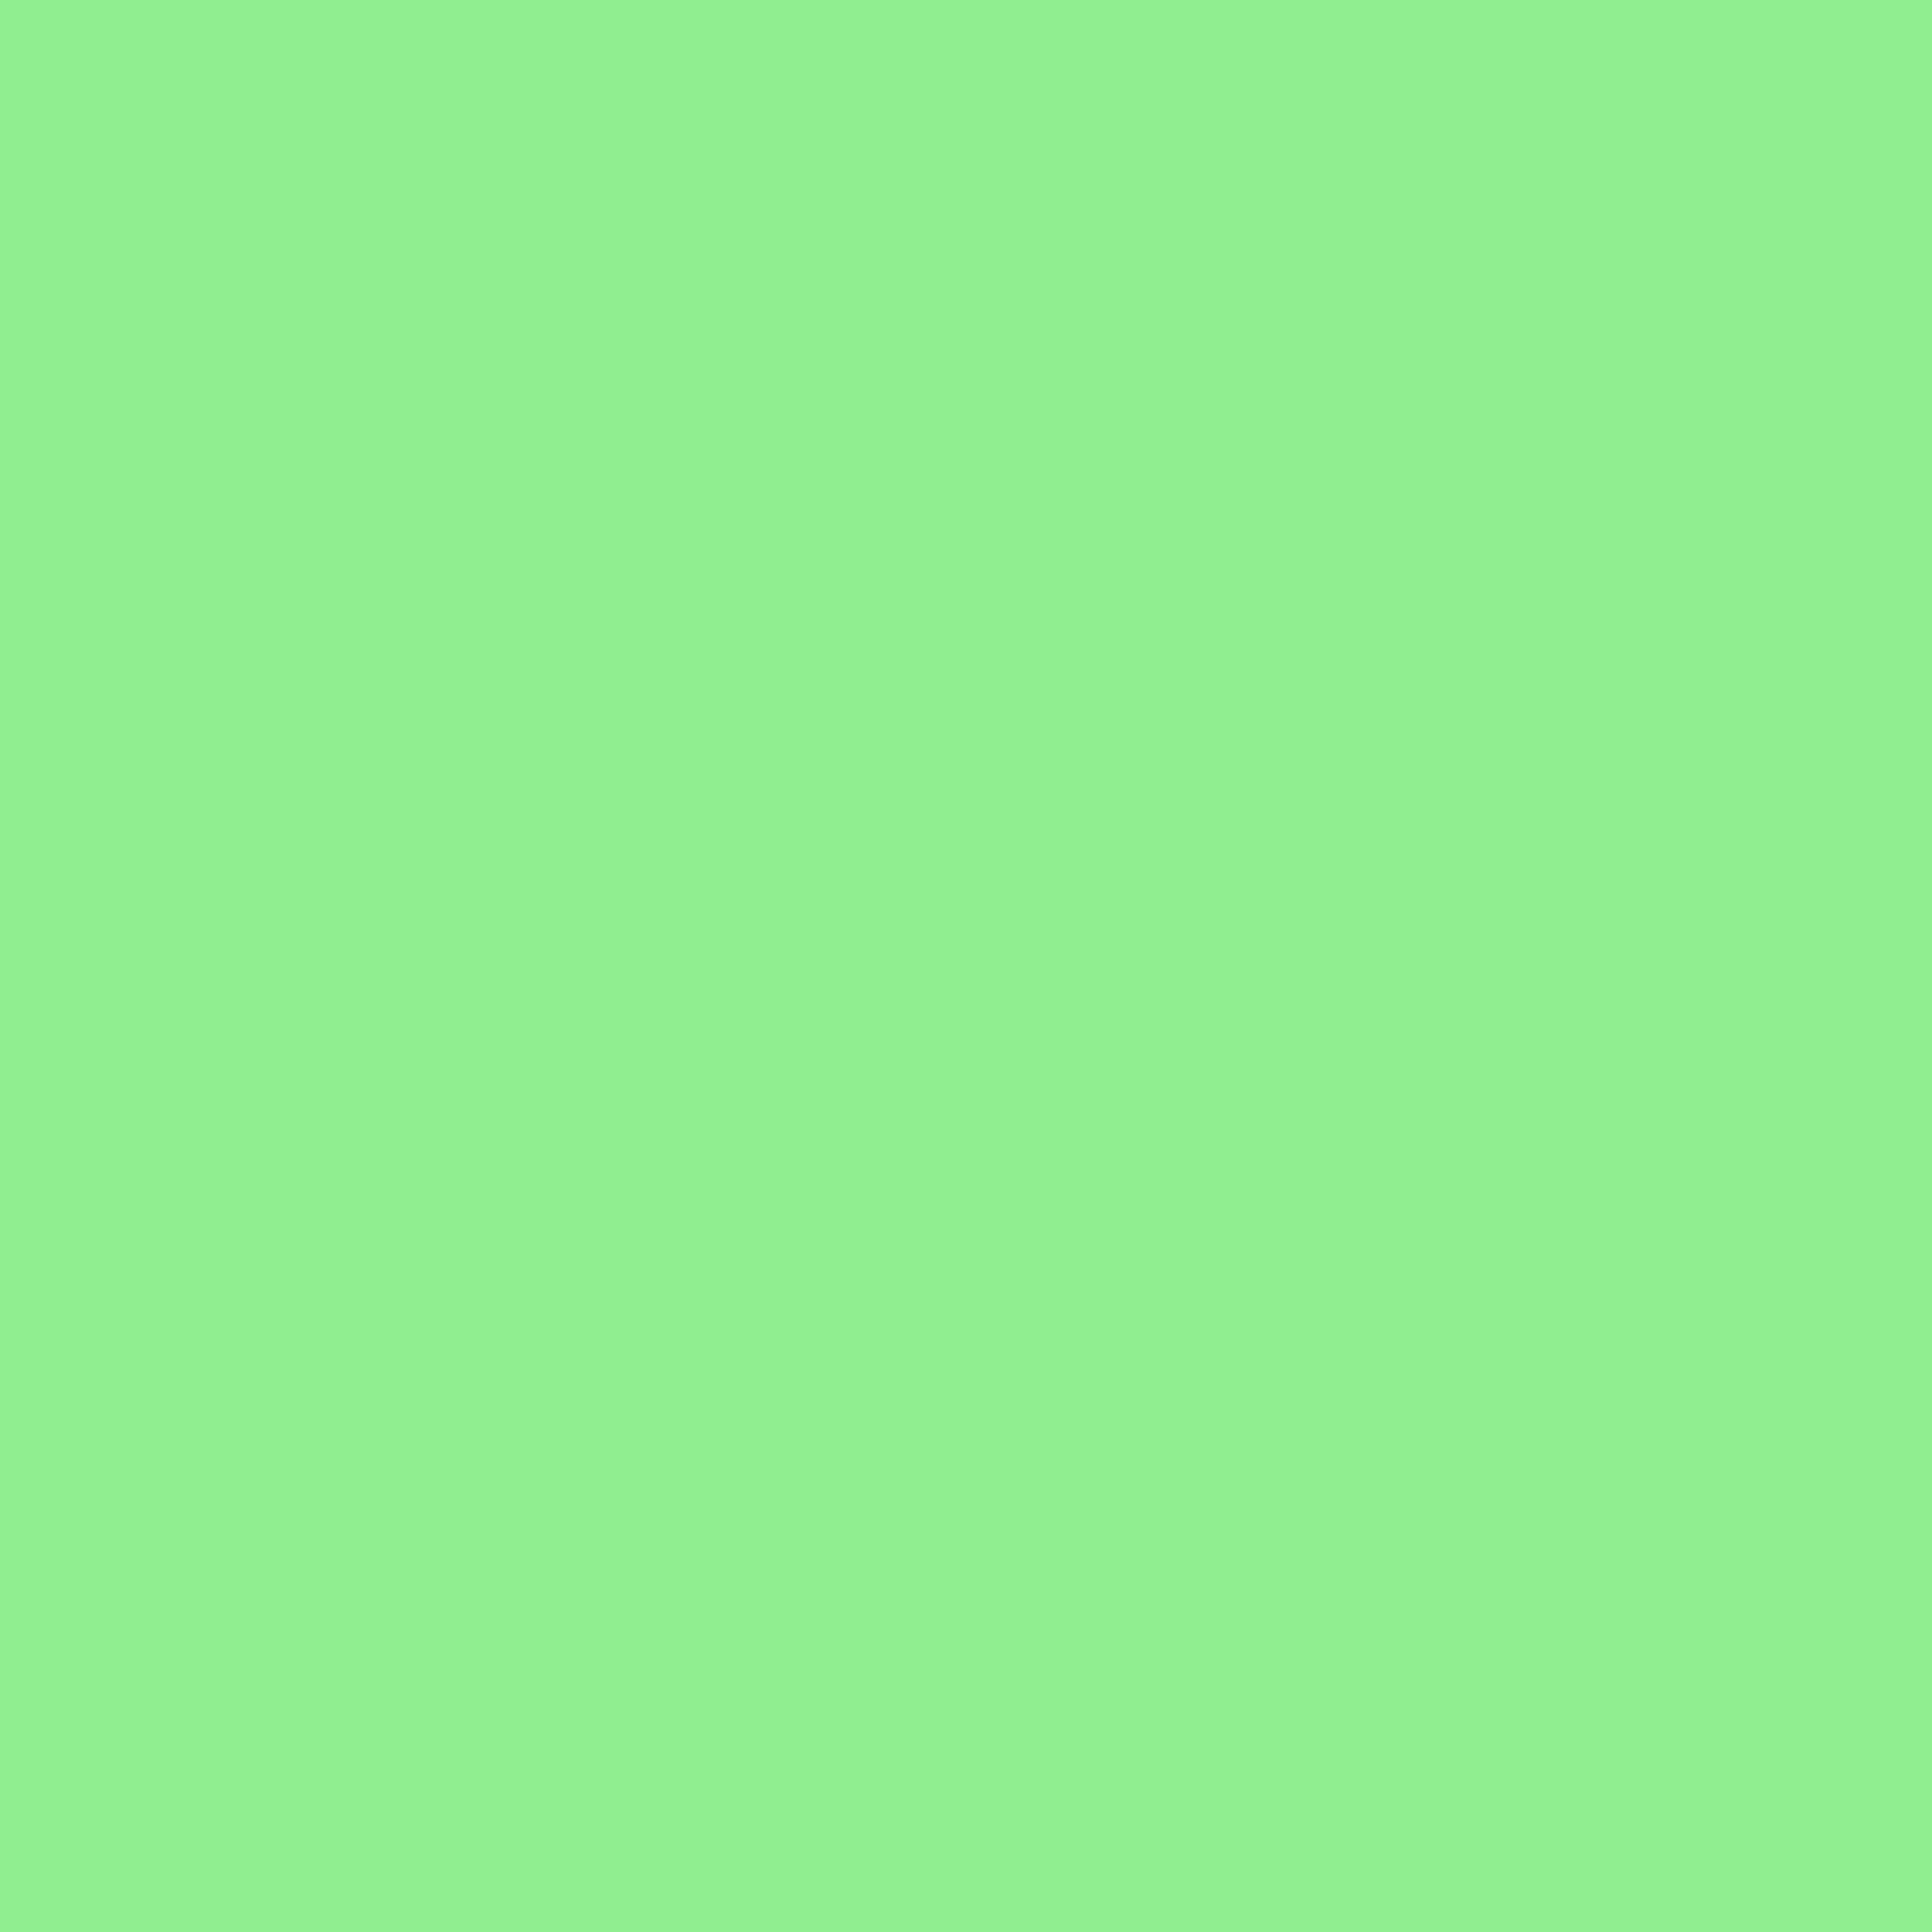 2732x2732 Light Green Solid Color Background